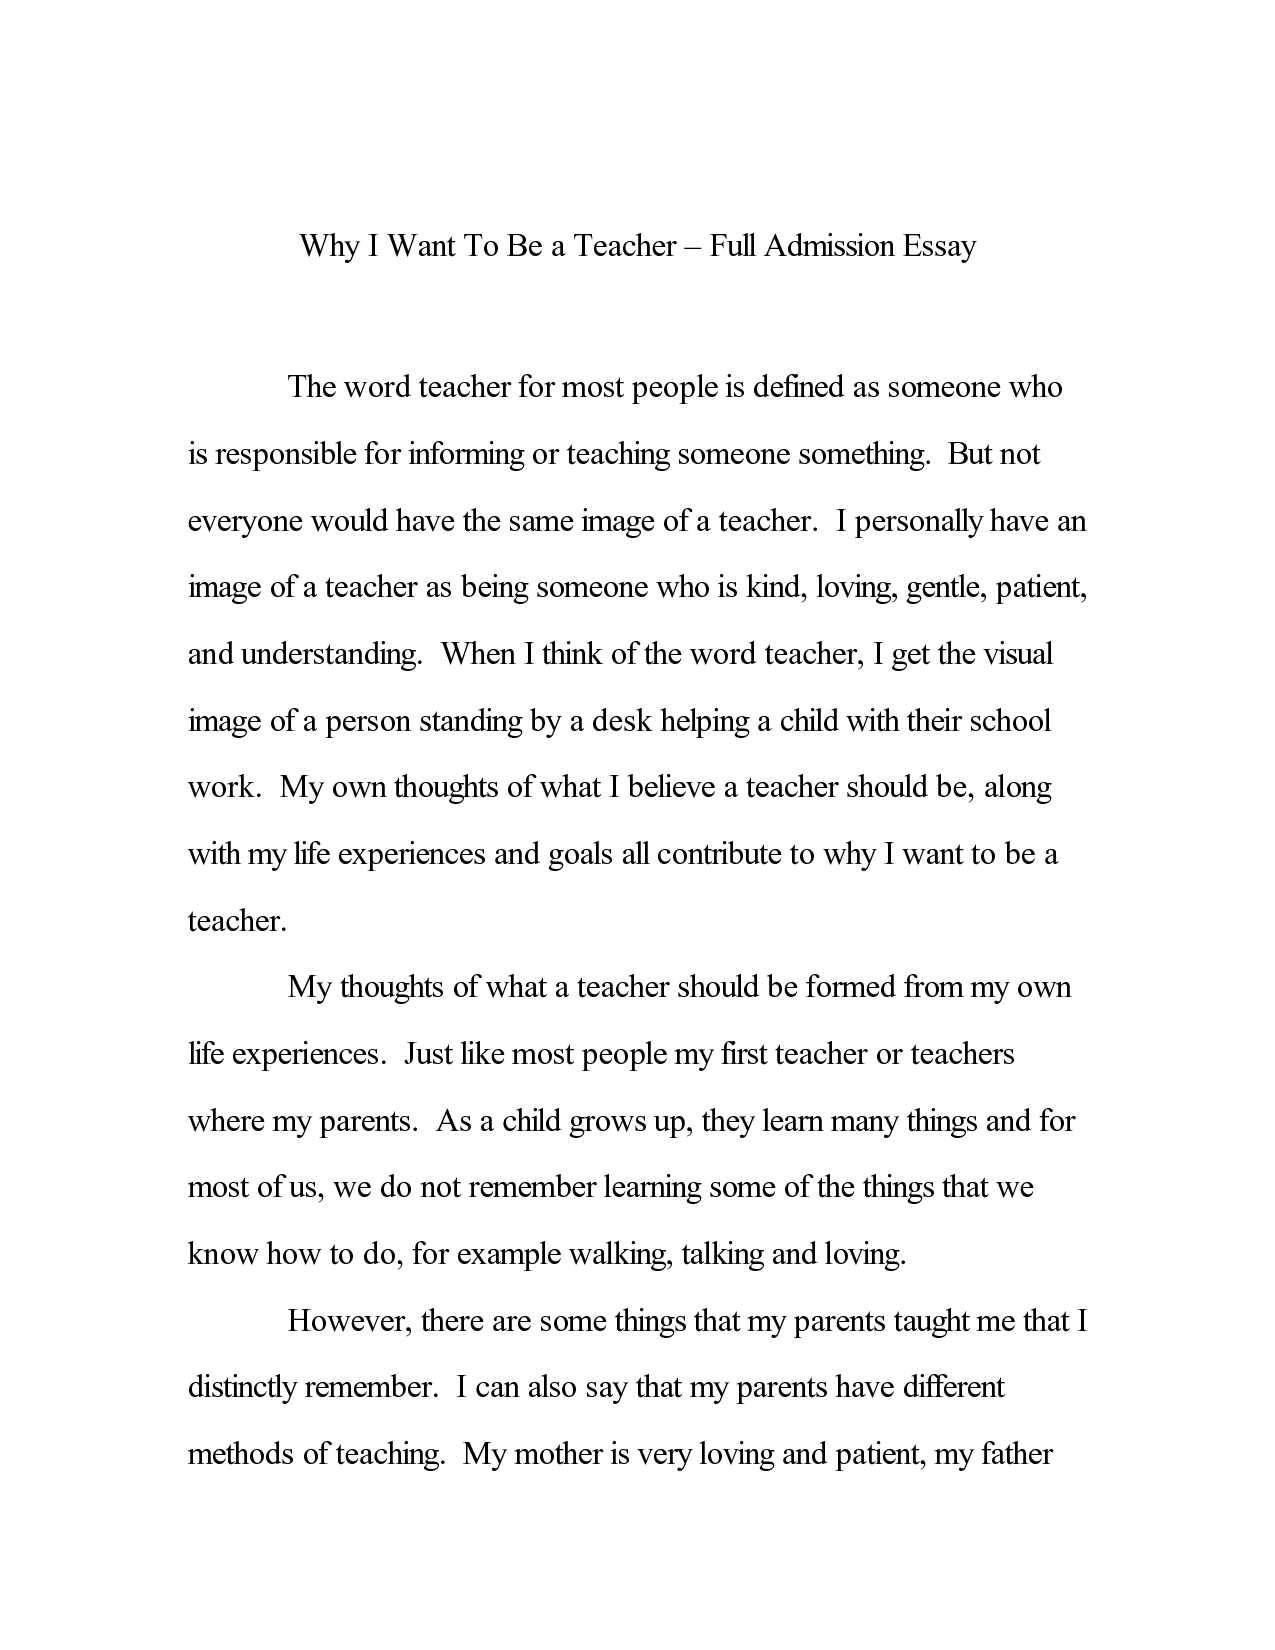 013 College Essay Prompt Examples Example Unforgettable Uc #1 Writing 2 Full